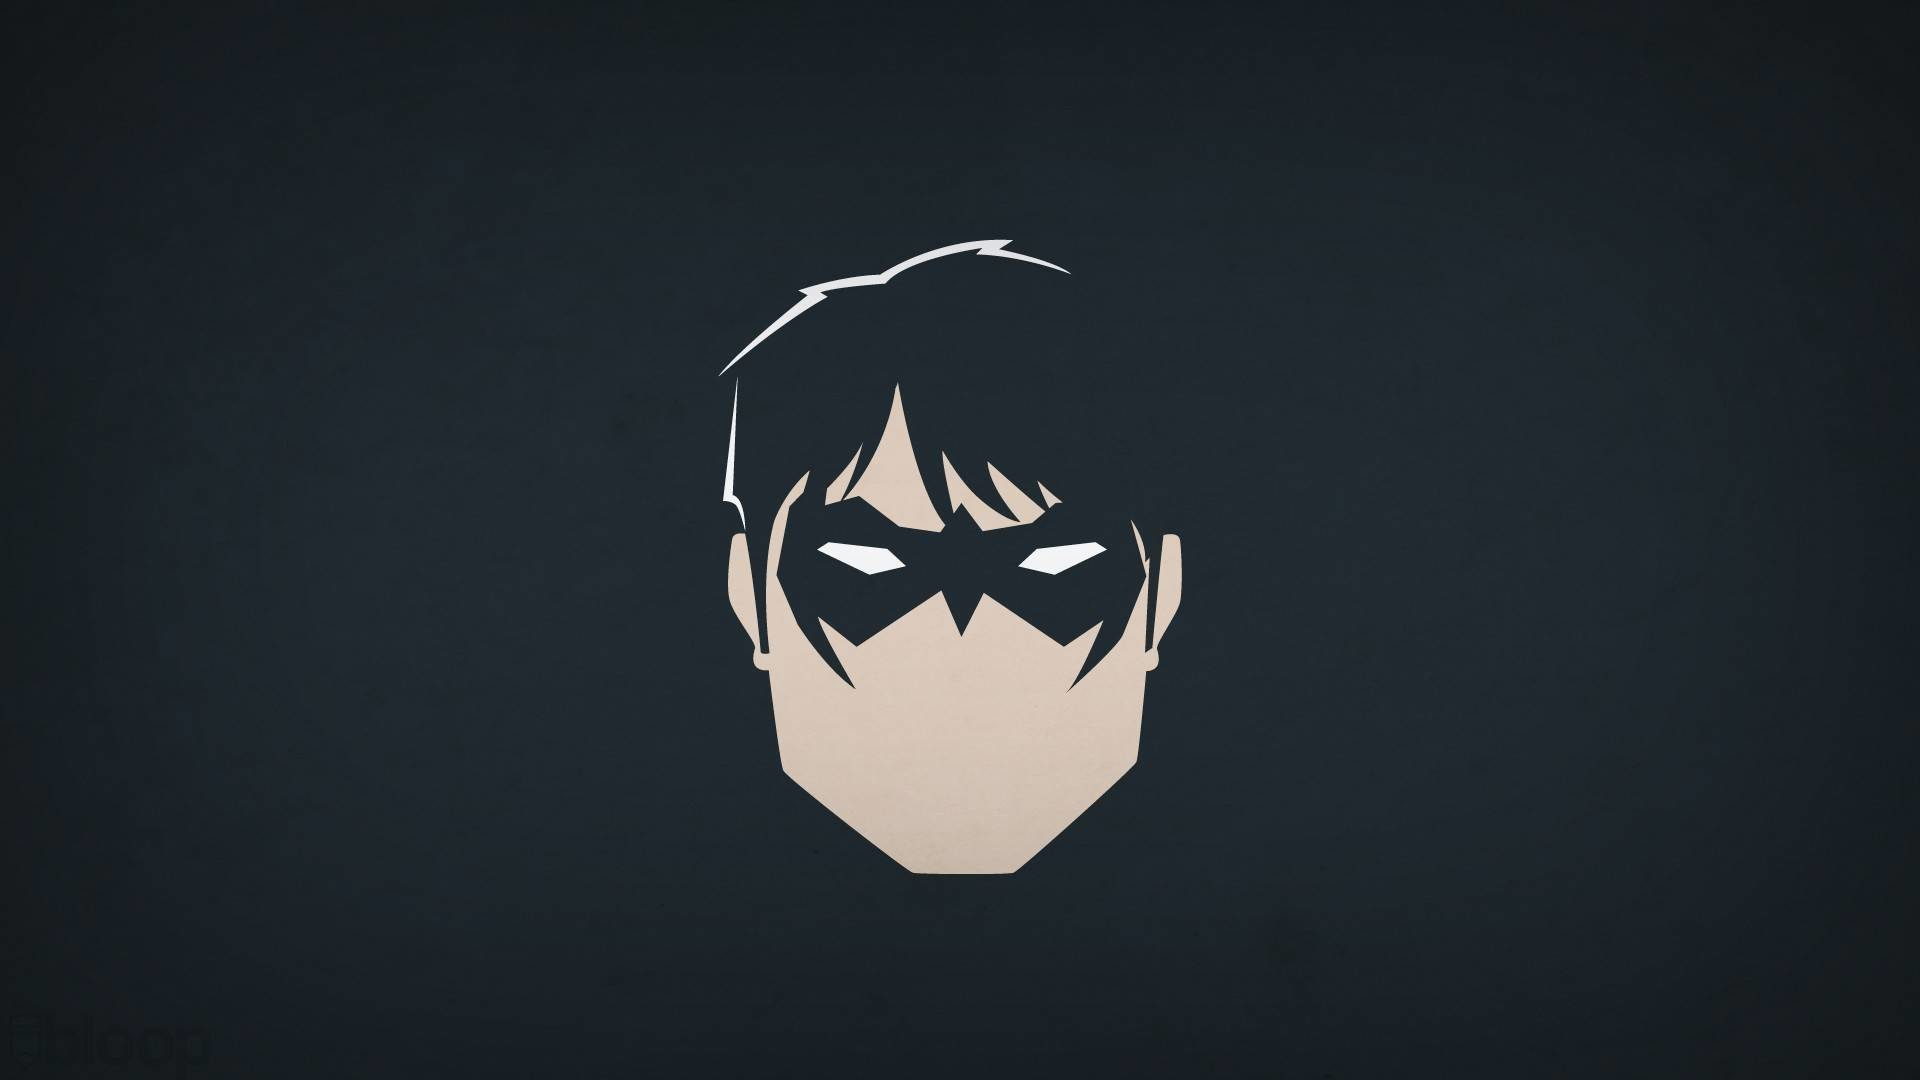 Res: 1920x1080, Wallpapers For > Nightwing Wallpaper